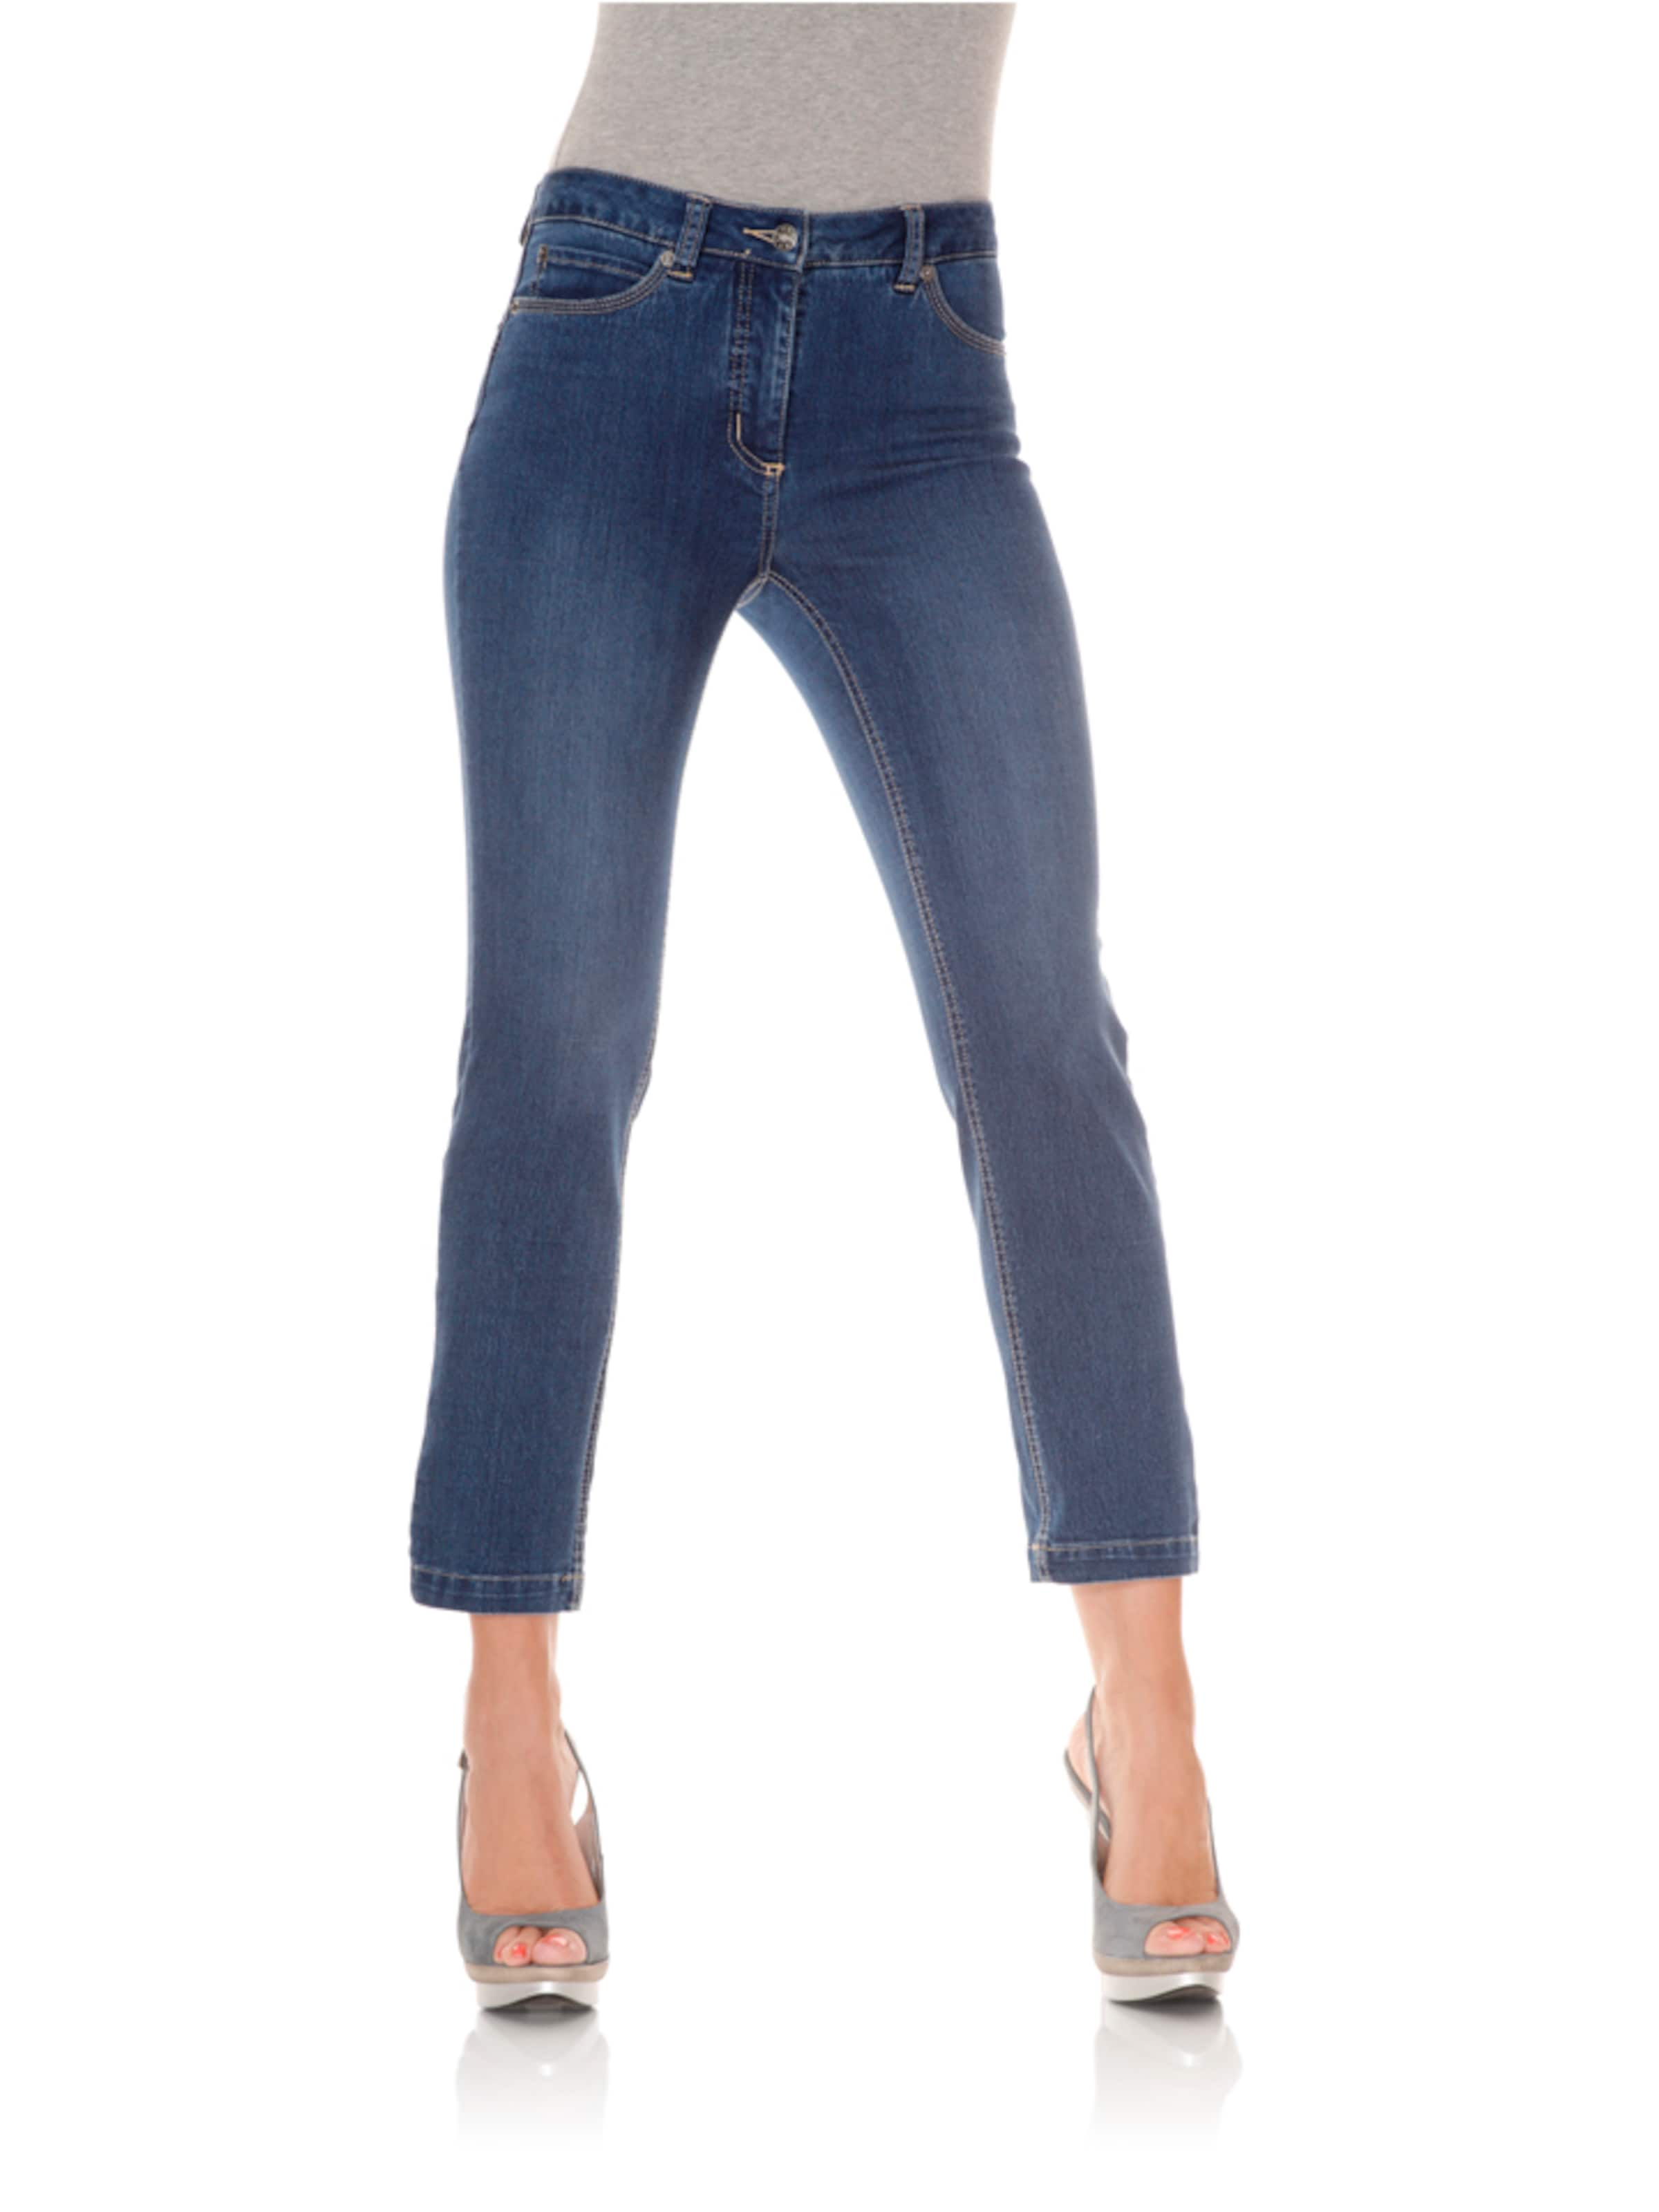 Bodyform Denim In Blue 7 jeans 8 Heine F3T1clJKu